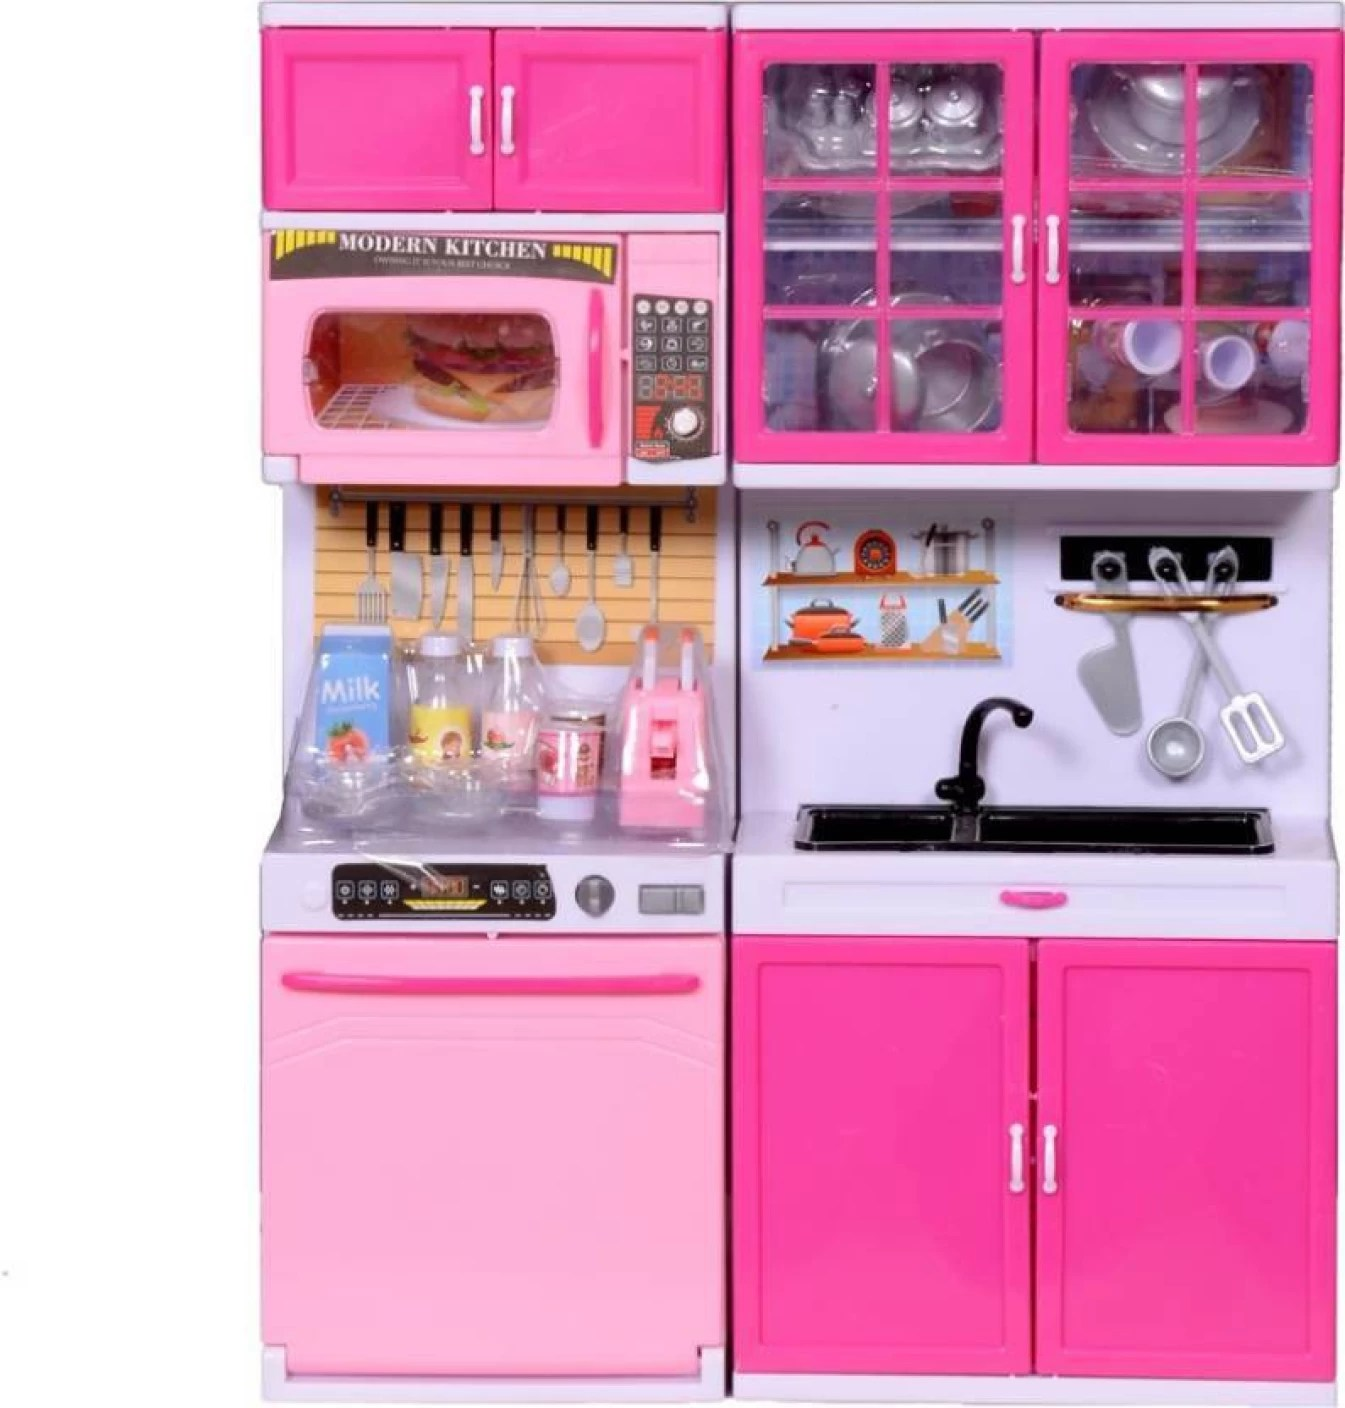 Modern Kitchen Battery Operated Modern Kitchen Barbie Swing Kitchen